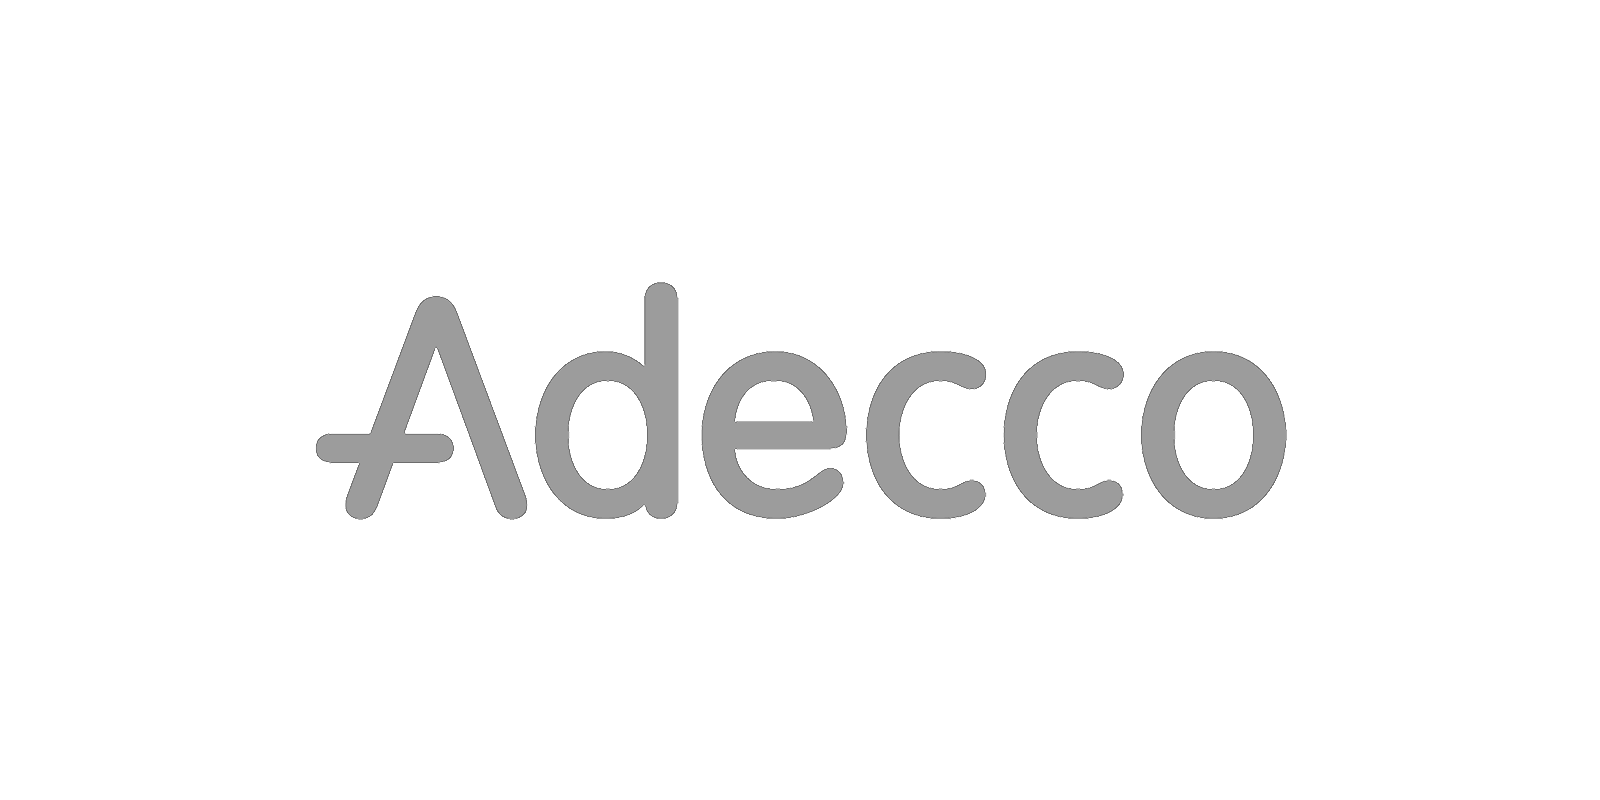 addecco.png